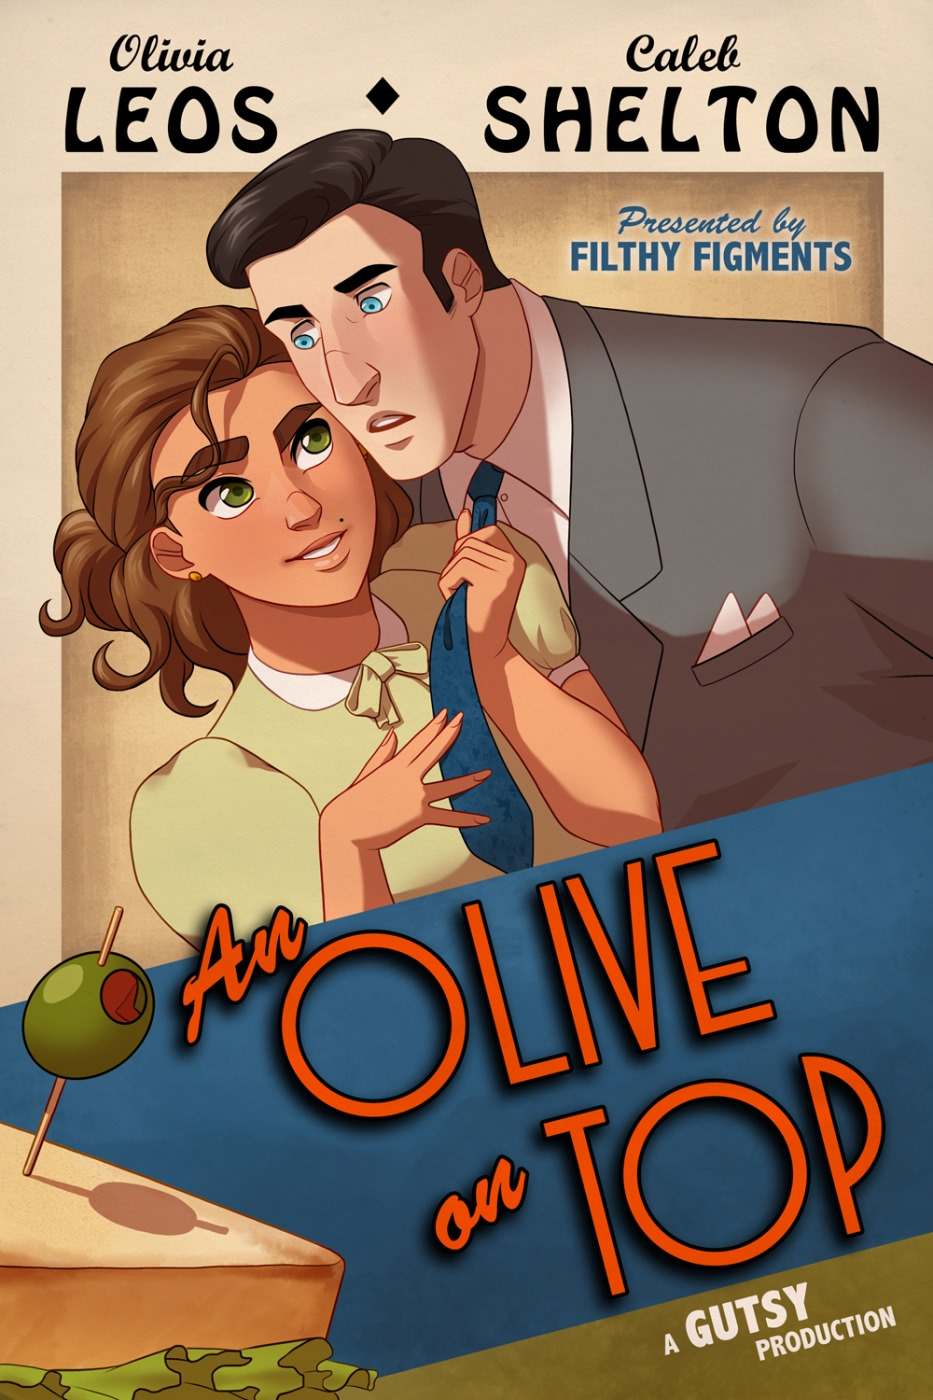 An Olive on Top- Gutsy image 1